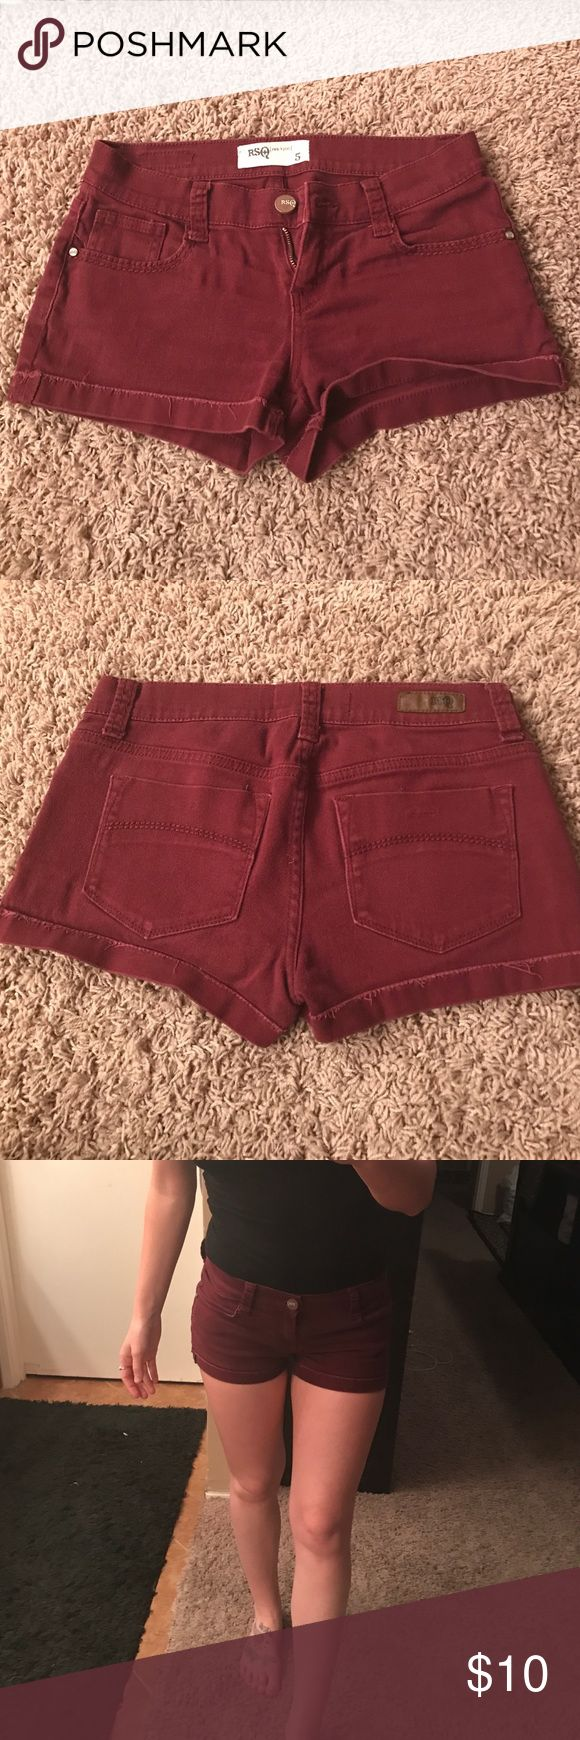 Rsq maroon shorts Size 5-stretchy, and snug. Very comfortable material! Bought one in every color and never had a chance to wear them.. no flaws! Beautiful maroon color Tilly's Shorts